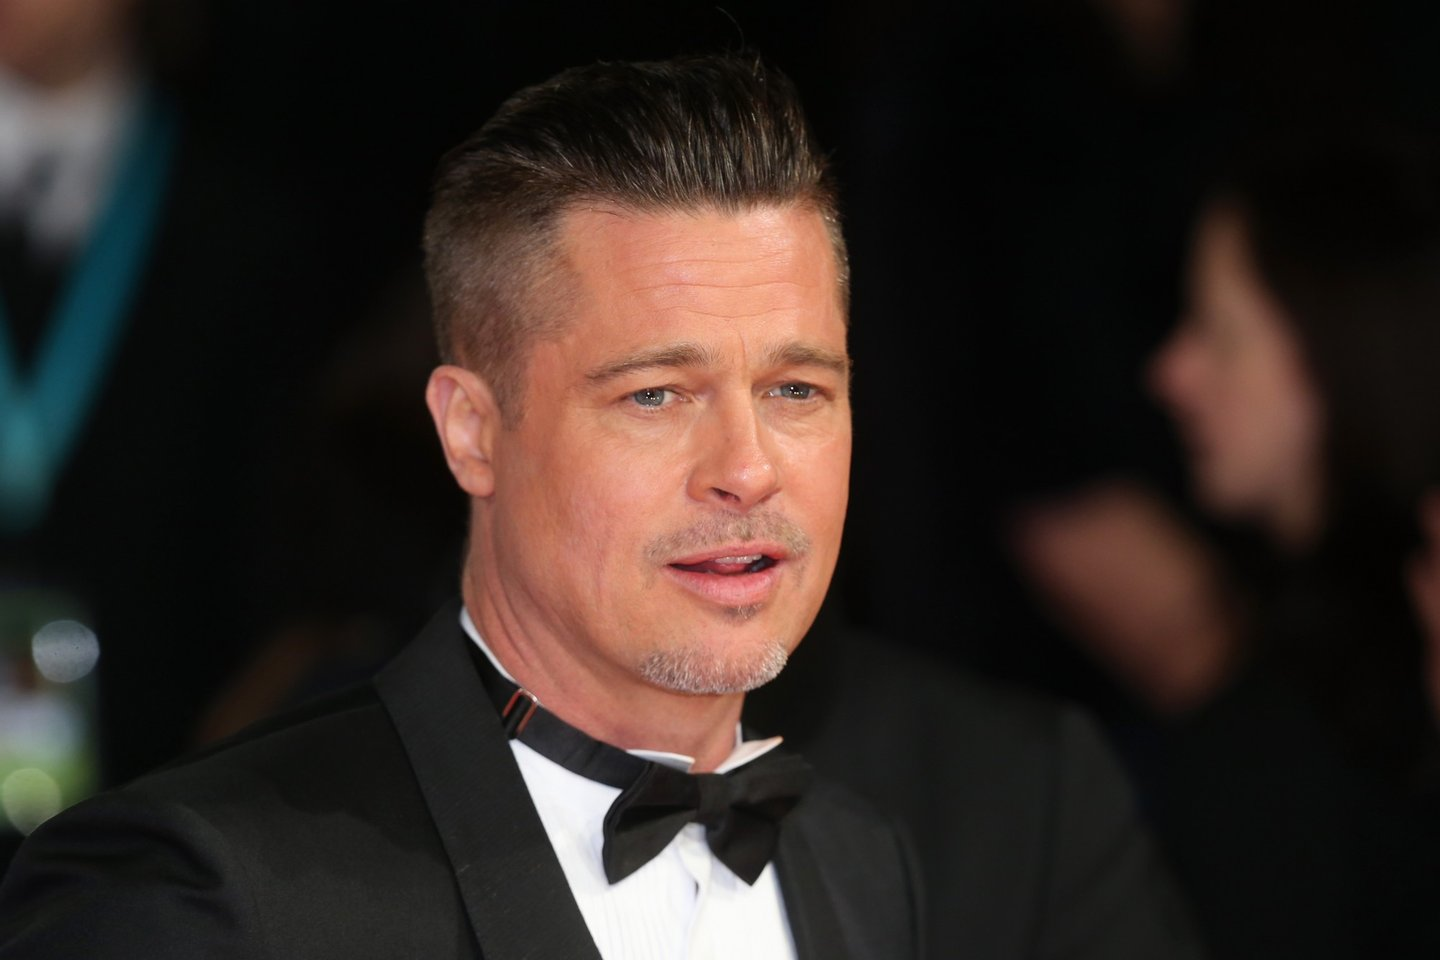 LONDON, ENGLAND - FEBRUARY 16: Actor Brad Pitt attends the EE British Academy Film Awards 2014 at The Royal Opera House on February 16, 2014 in London, England. (Photo by Chris Jackson/Getty Images)